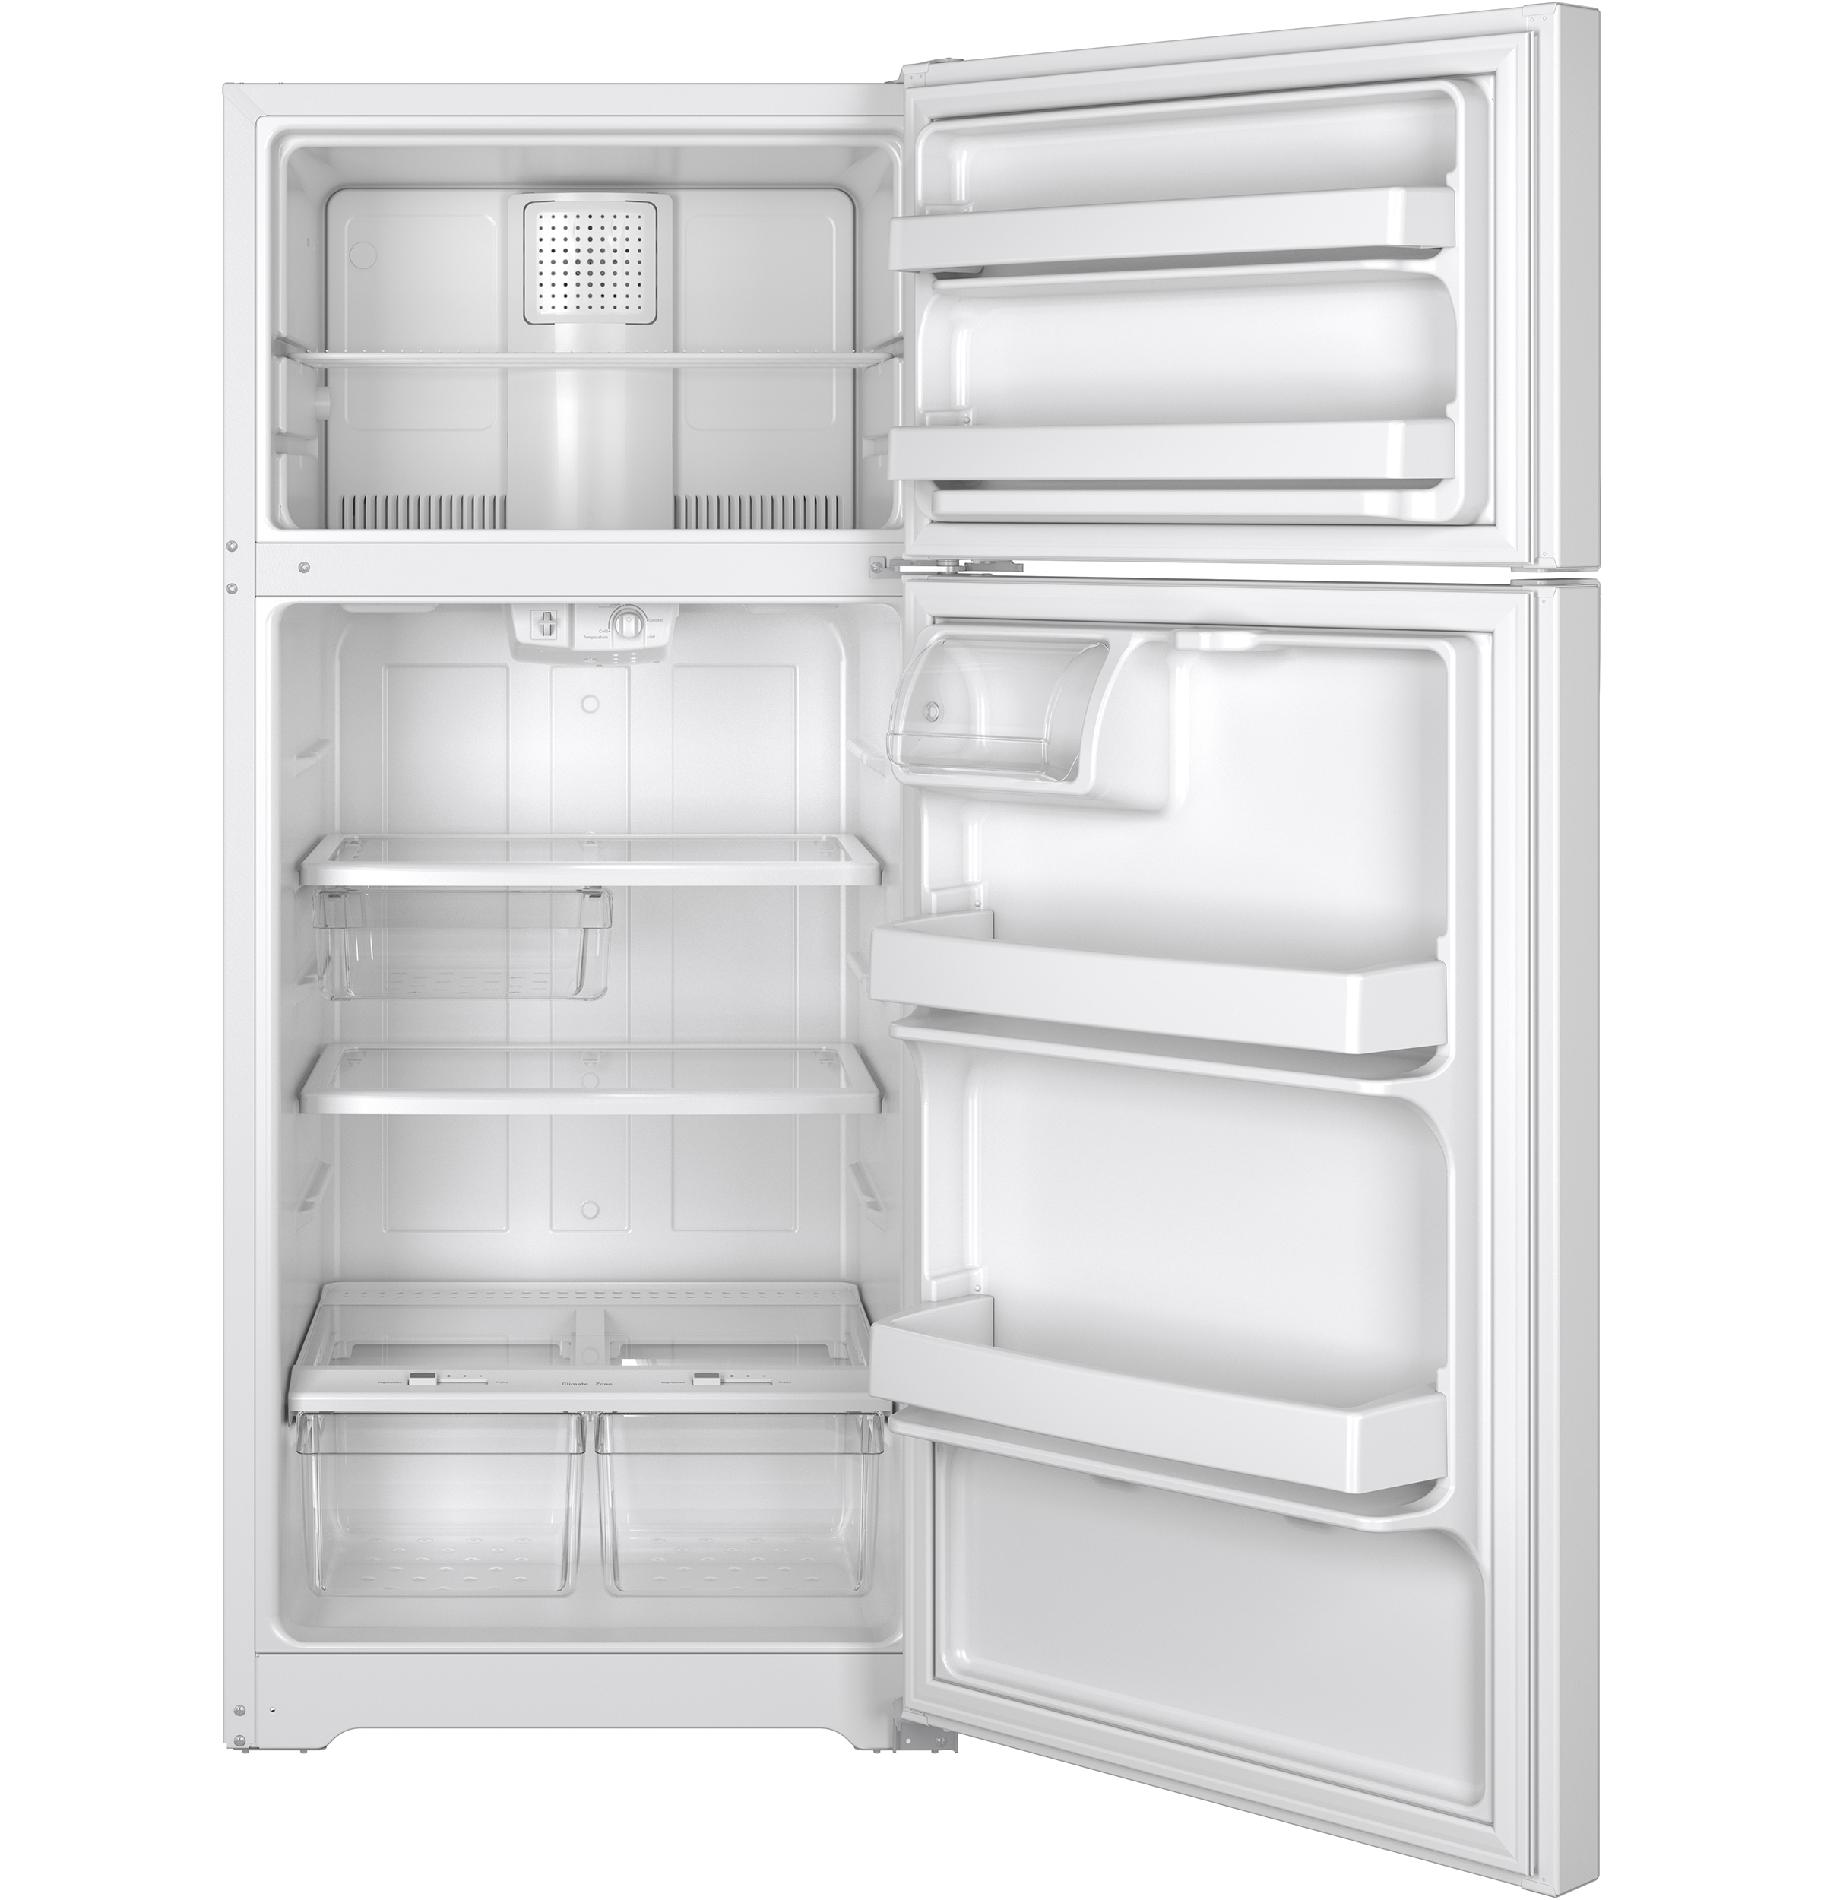 GE Appliances GTS16GTHWW 15.5 cu. ft. Top-Freezer Refrigerator - White